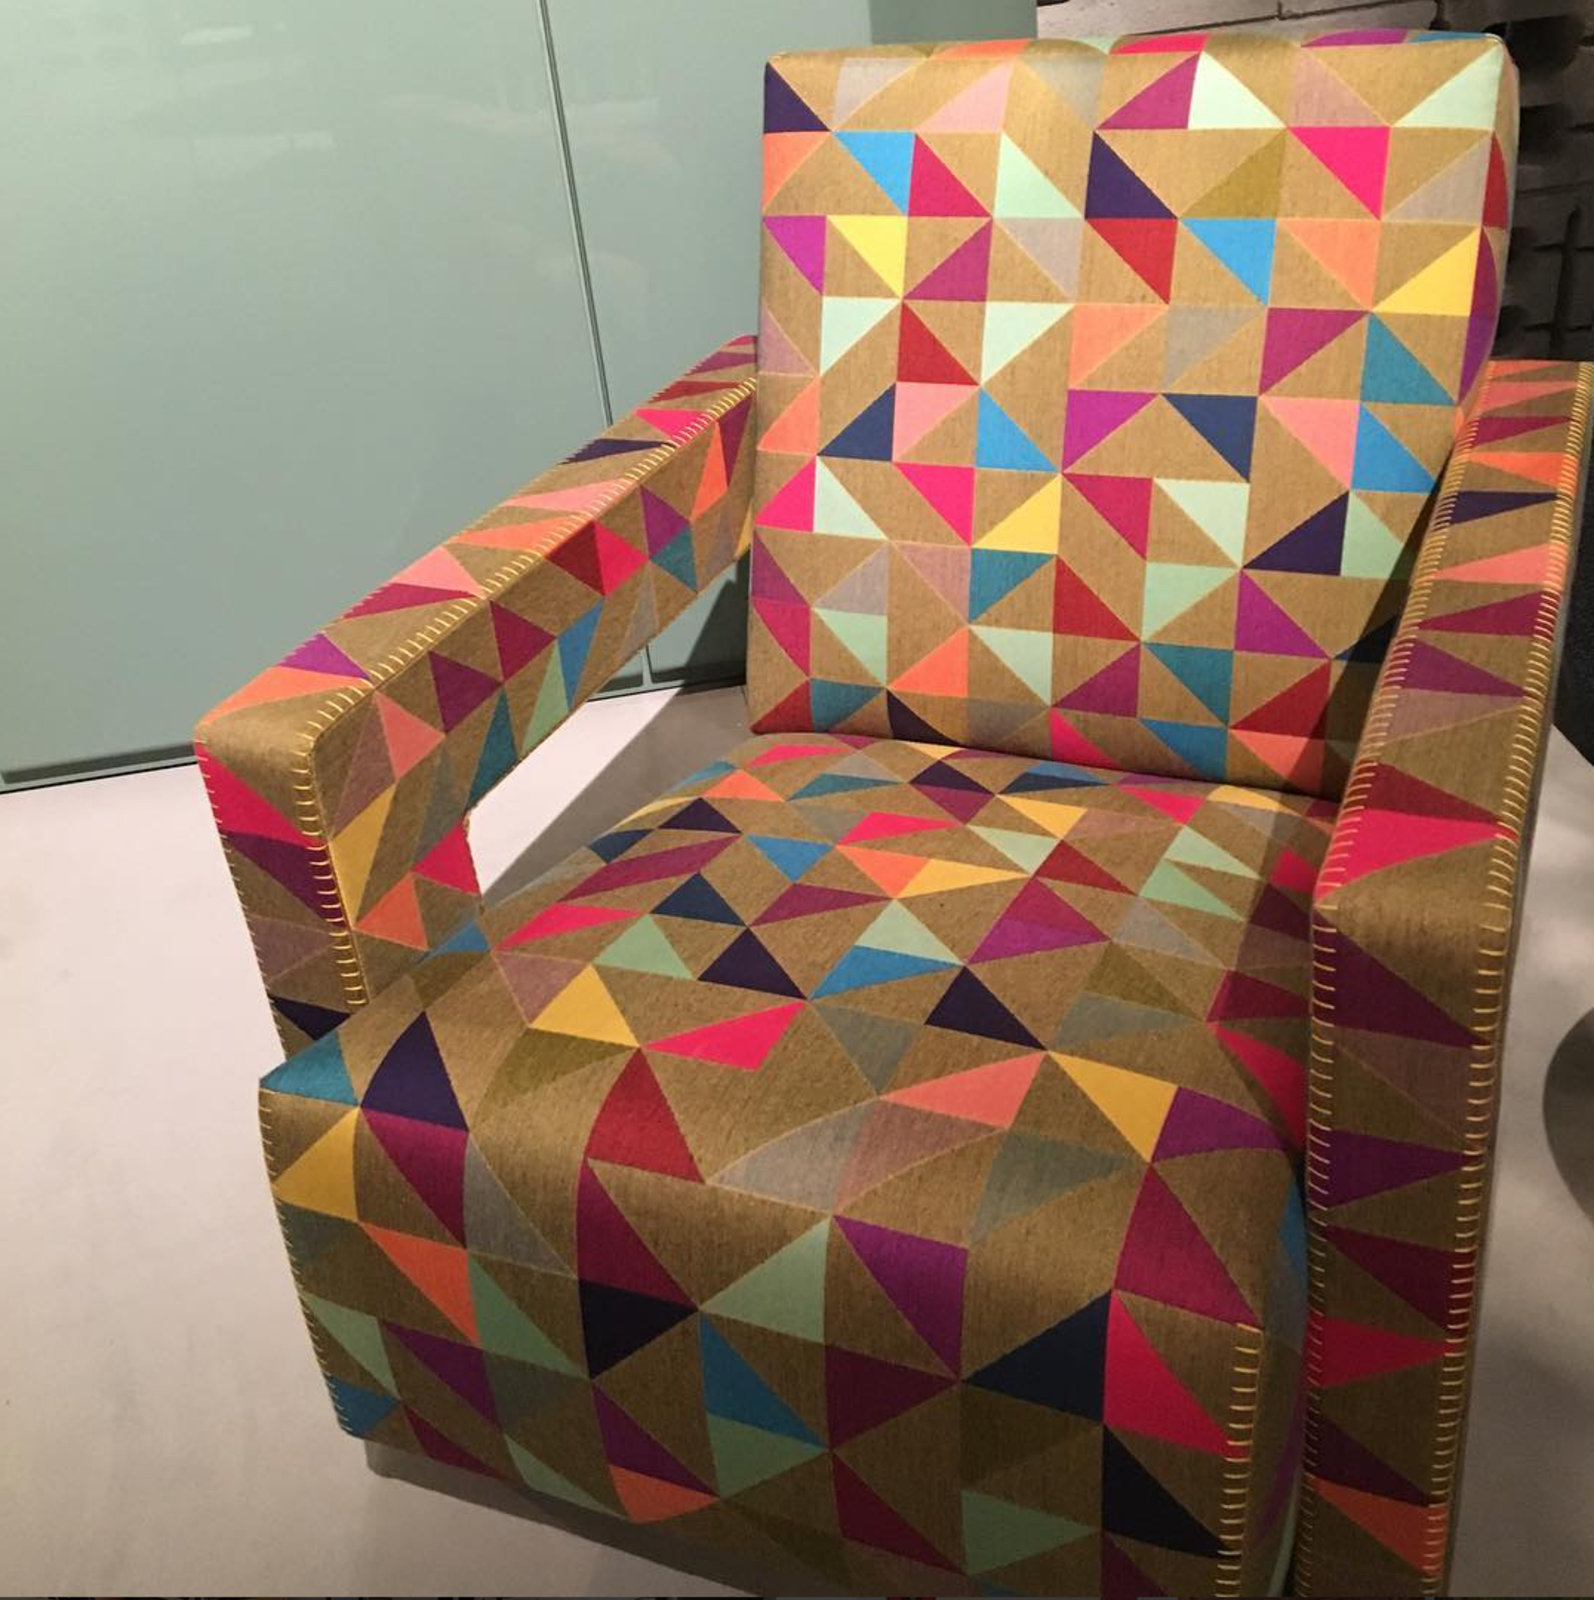 Gerrit Rietveld's 1935 Utrecht chair, covered in Boxblocks by Bertjan Pot for Cassina.  Editors' Picks from Salone del Mobile 2016: Day Two by Dwell